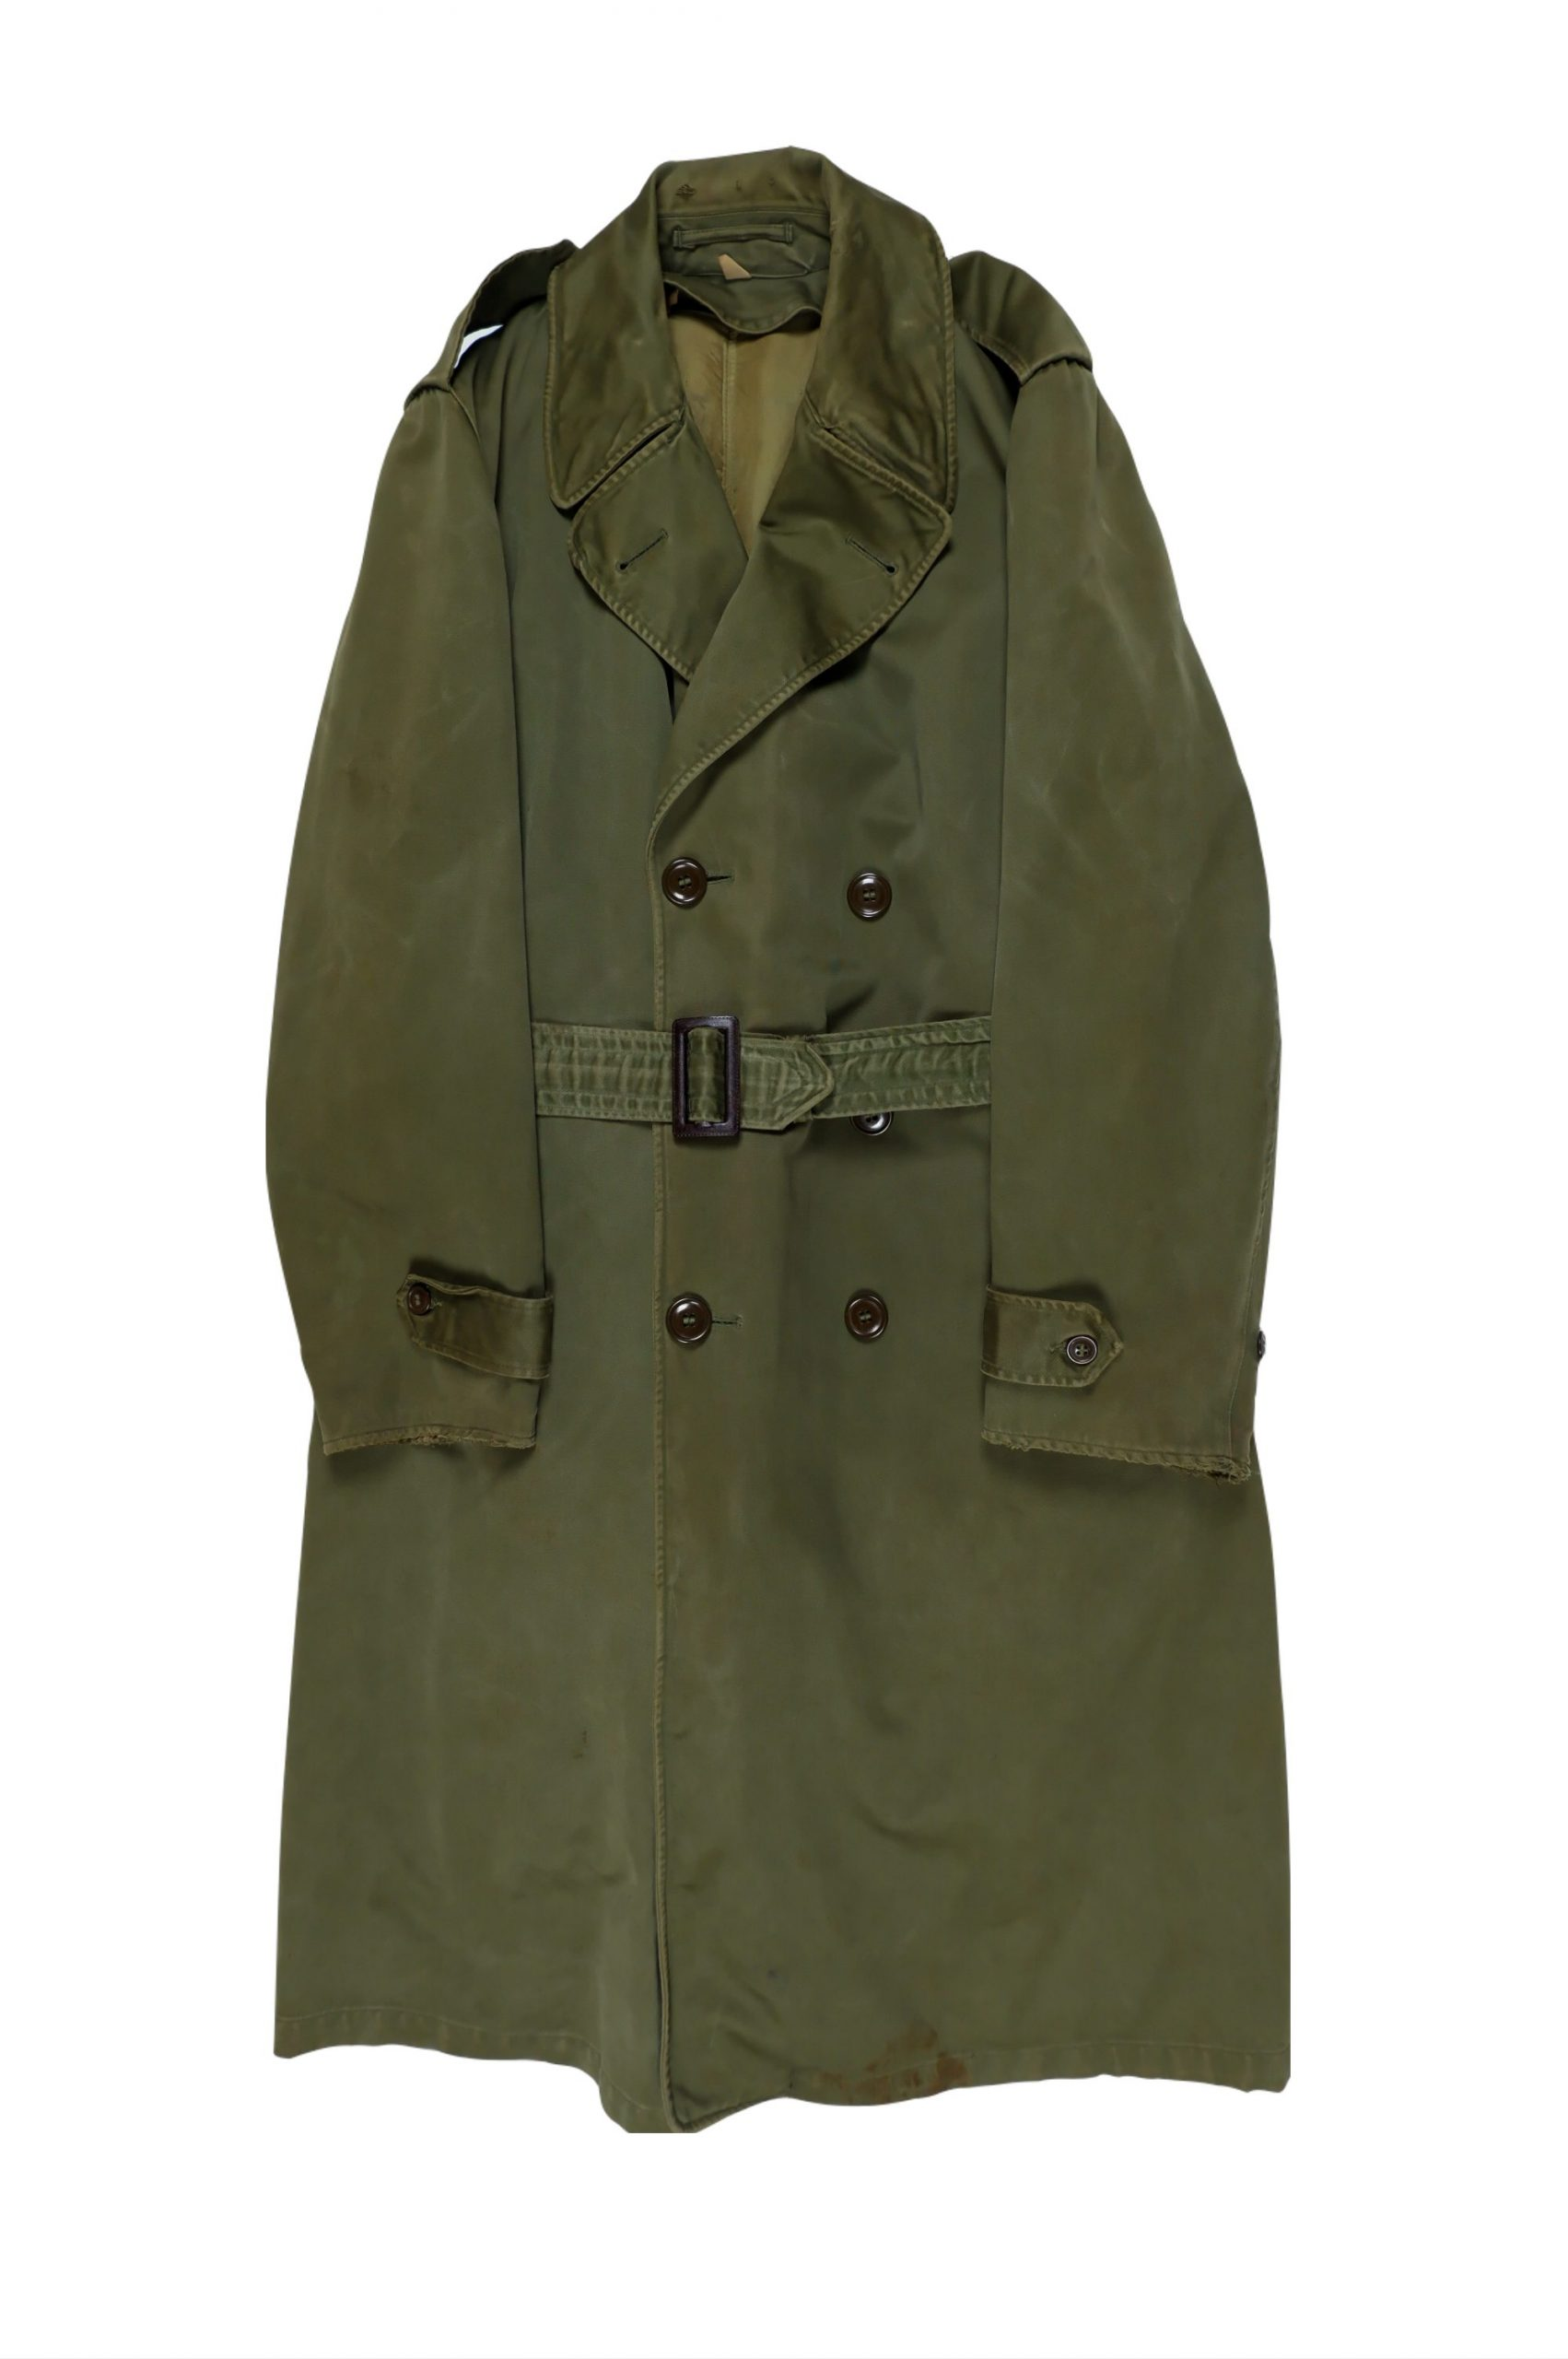 1950's Vintage Military Trench Coat